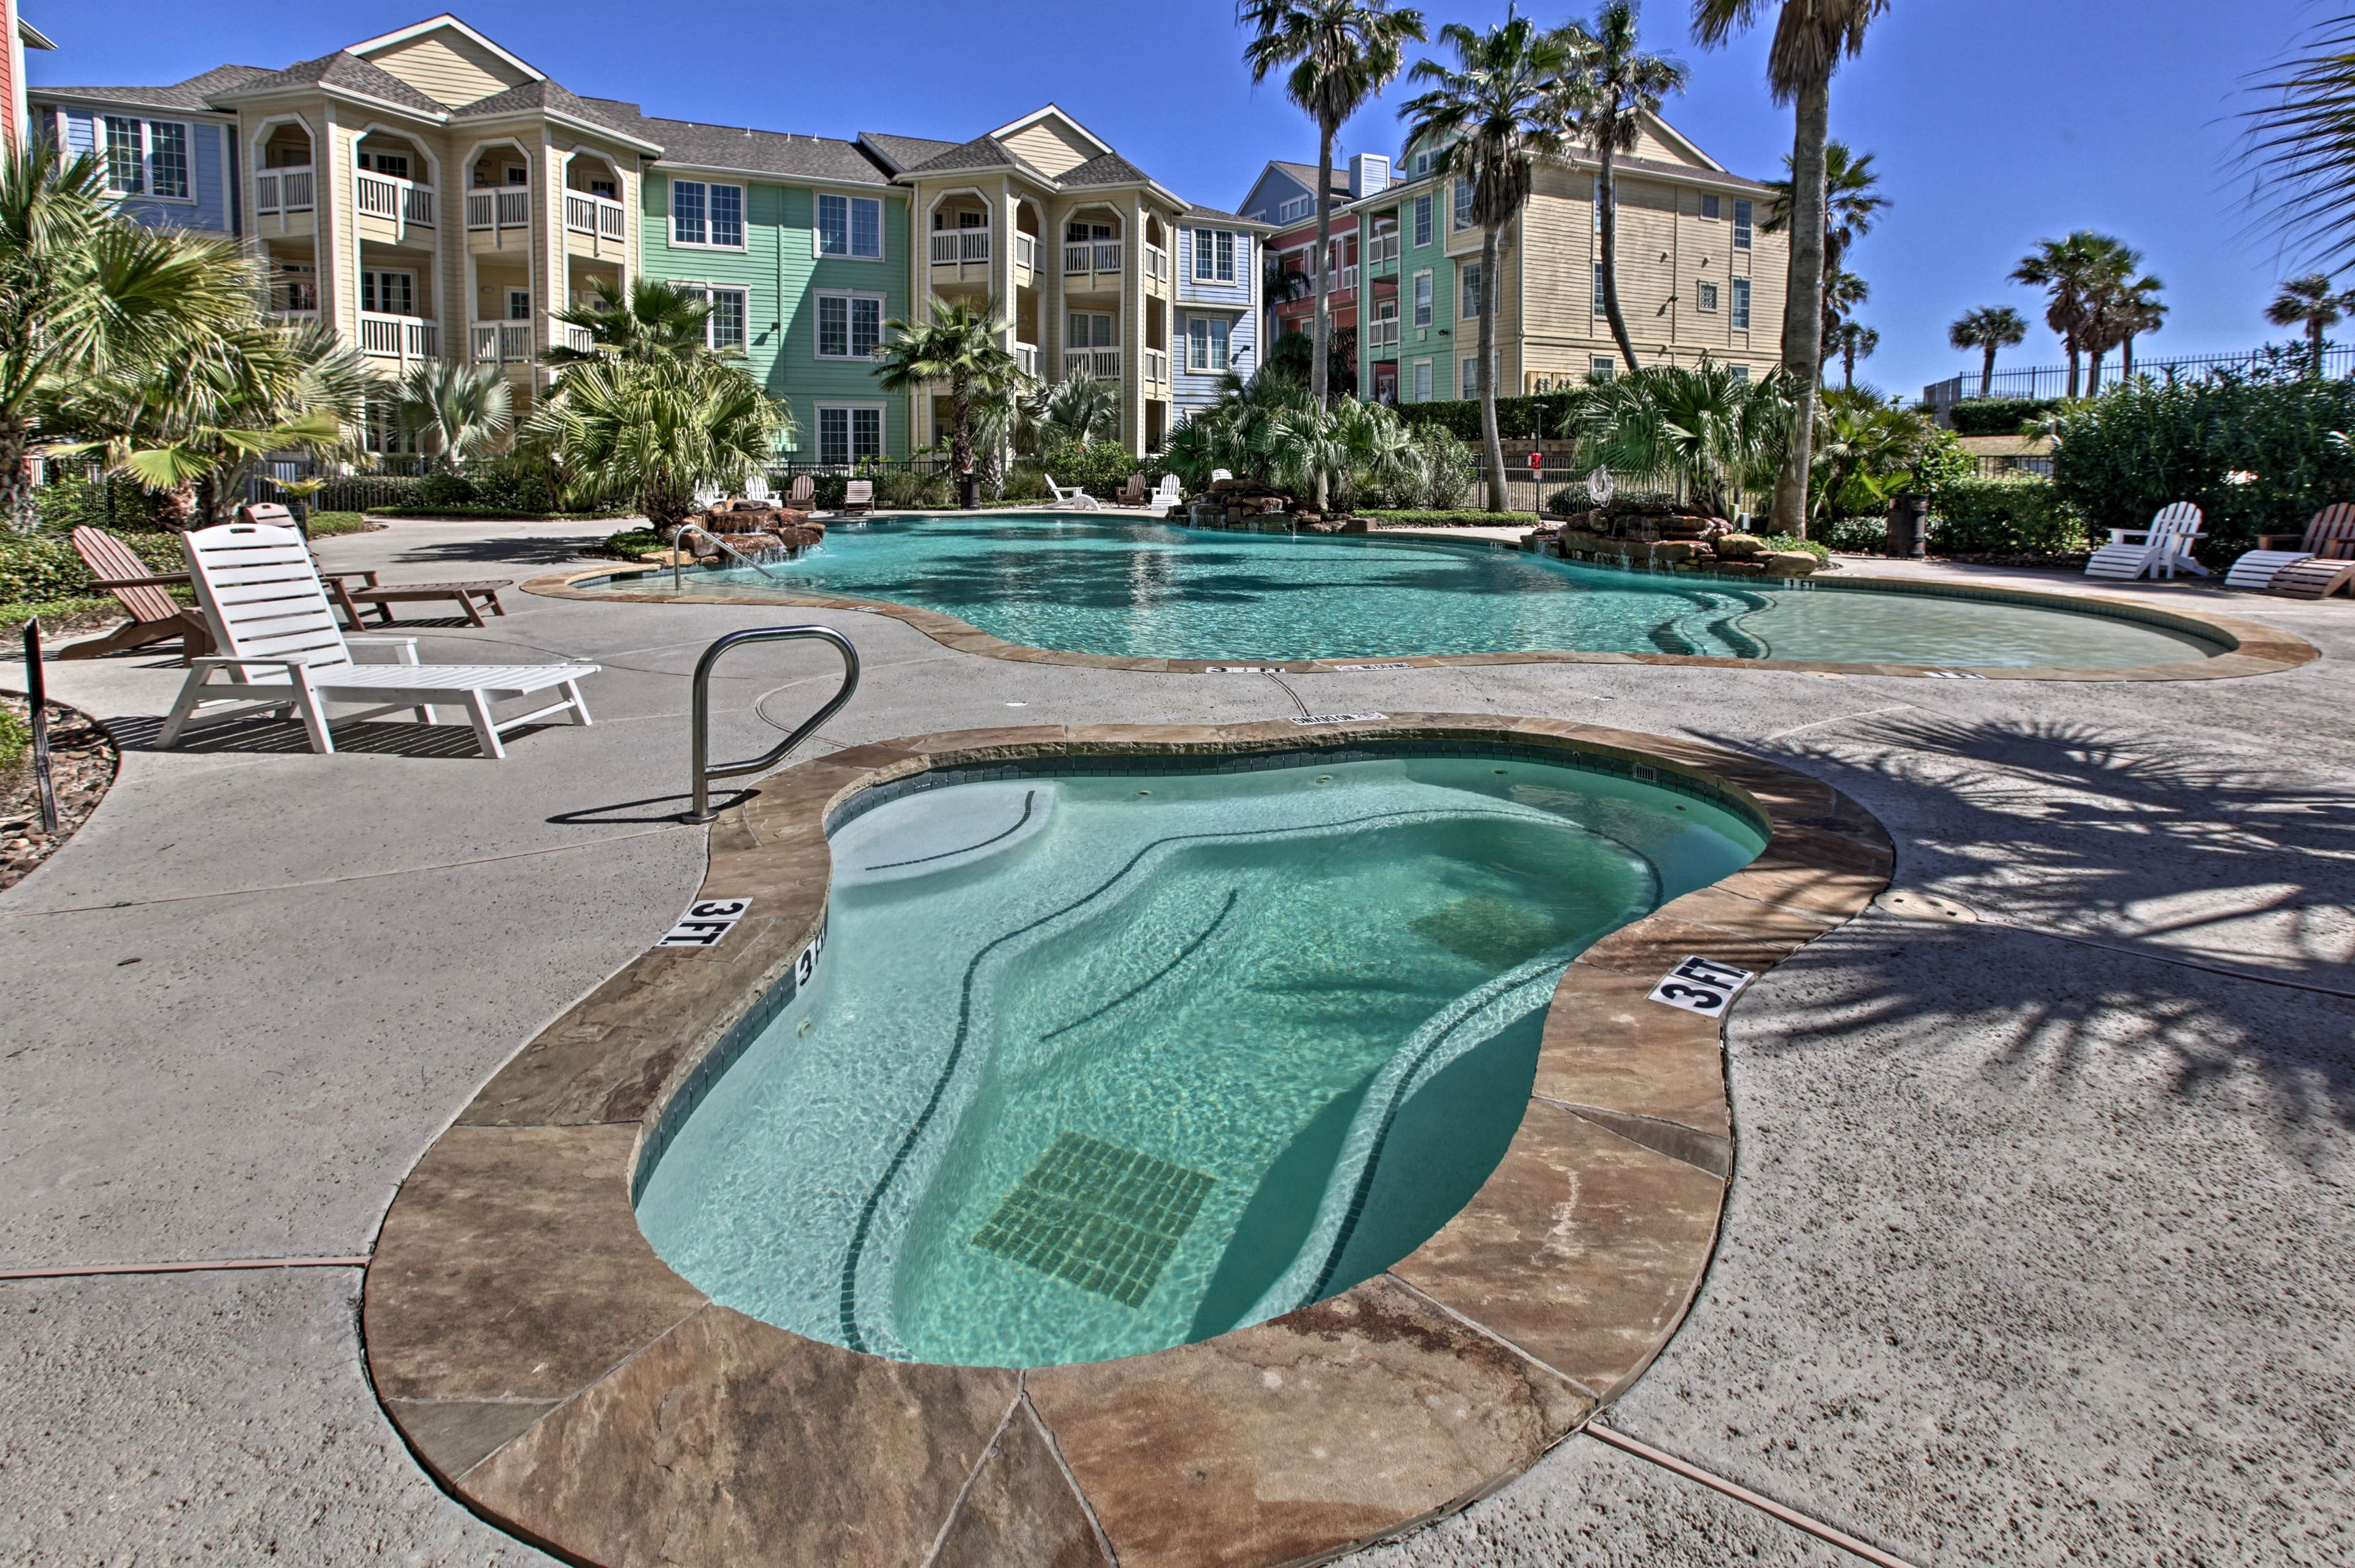 Soak up the coastal breeze from either of the 2 pools.